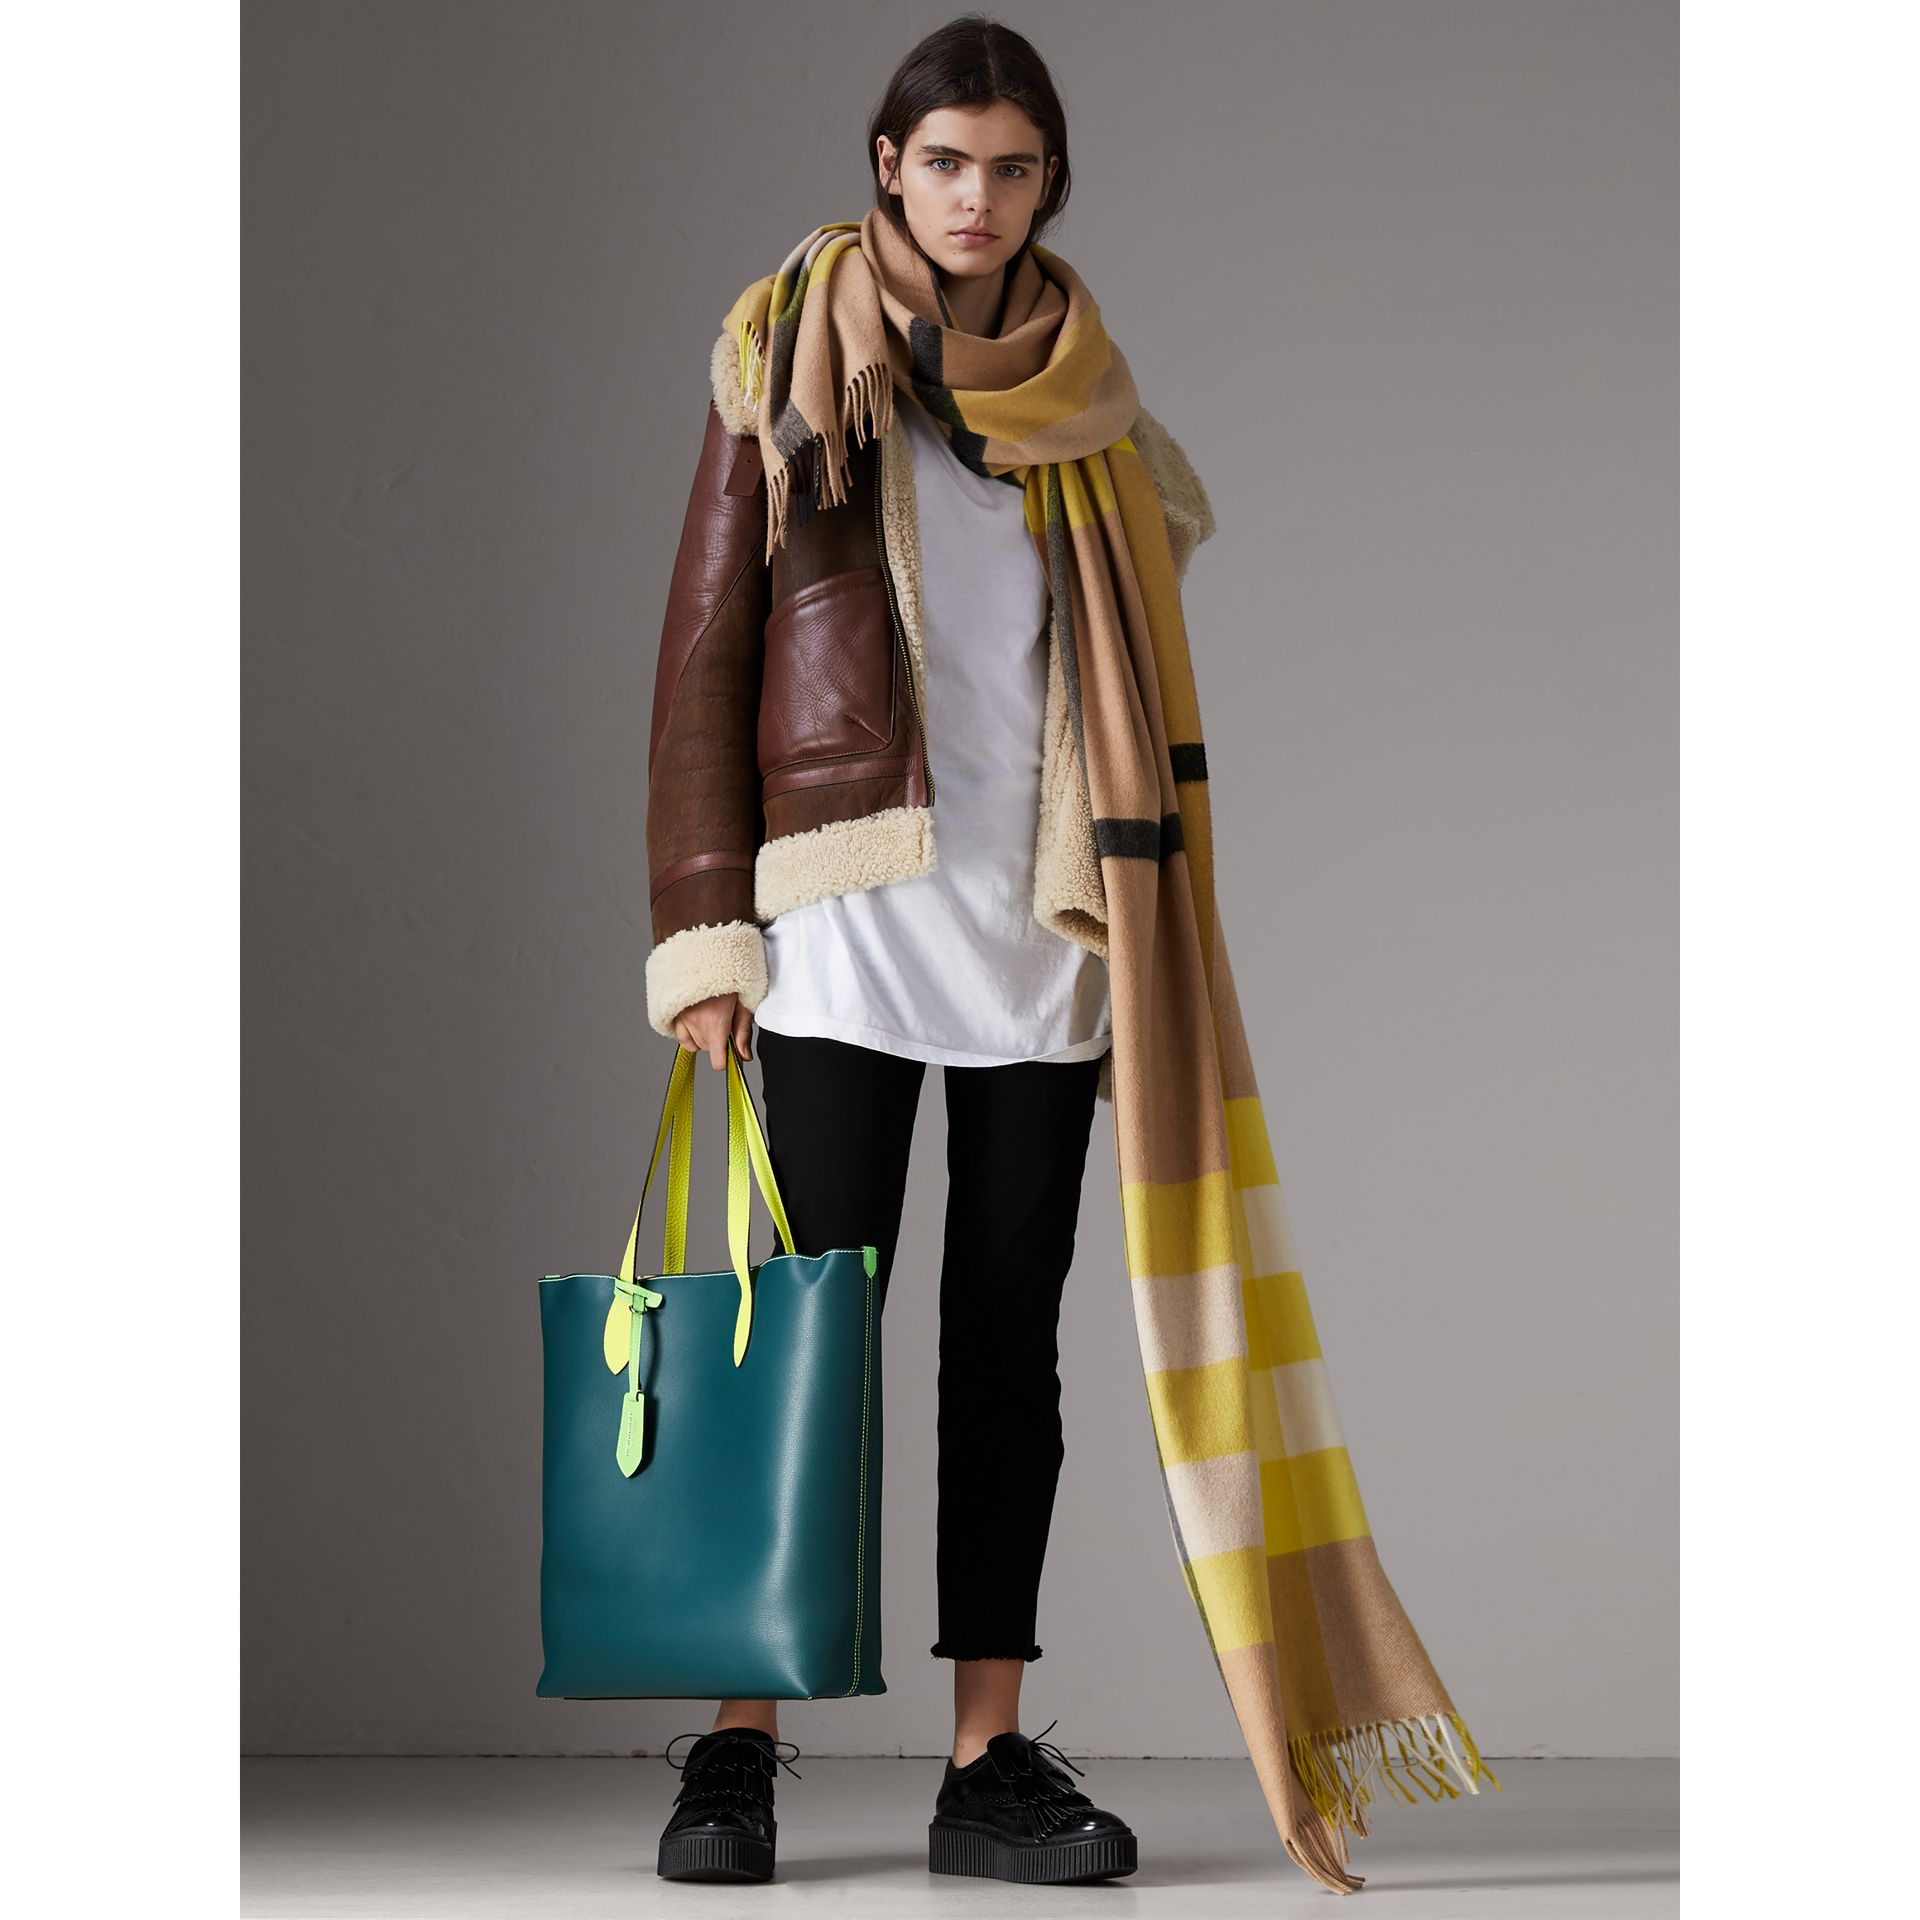 Medium Two-tone Coated Leather Tote in Dark Teal | Burberry - gallery image 2